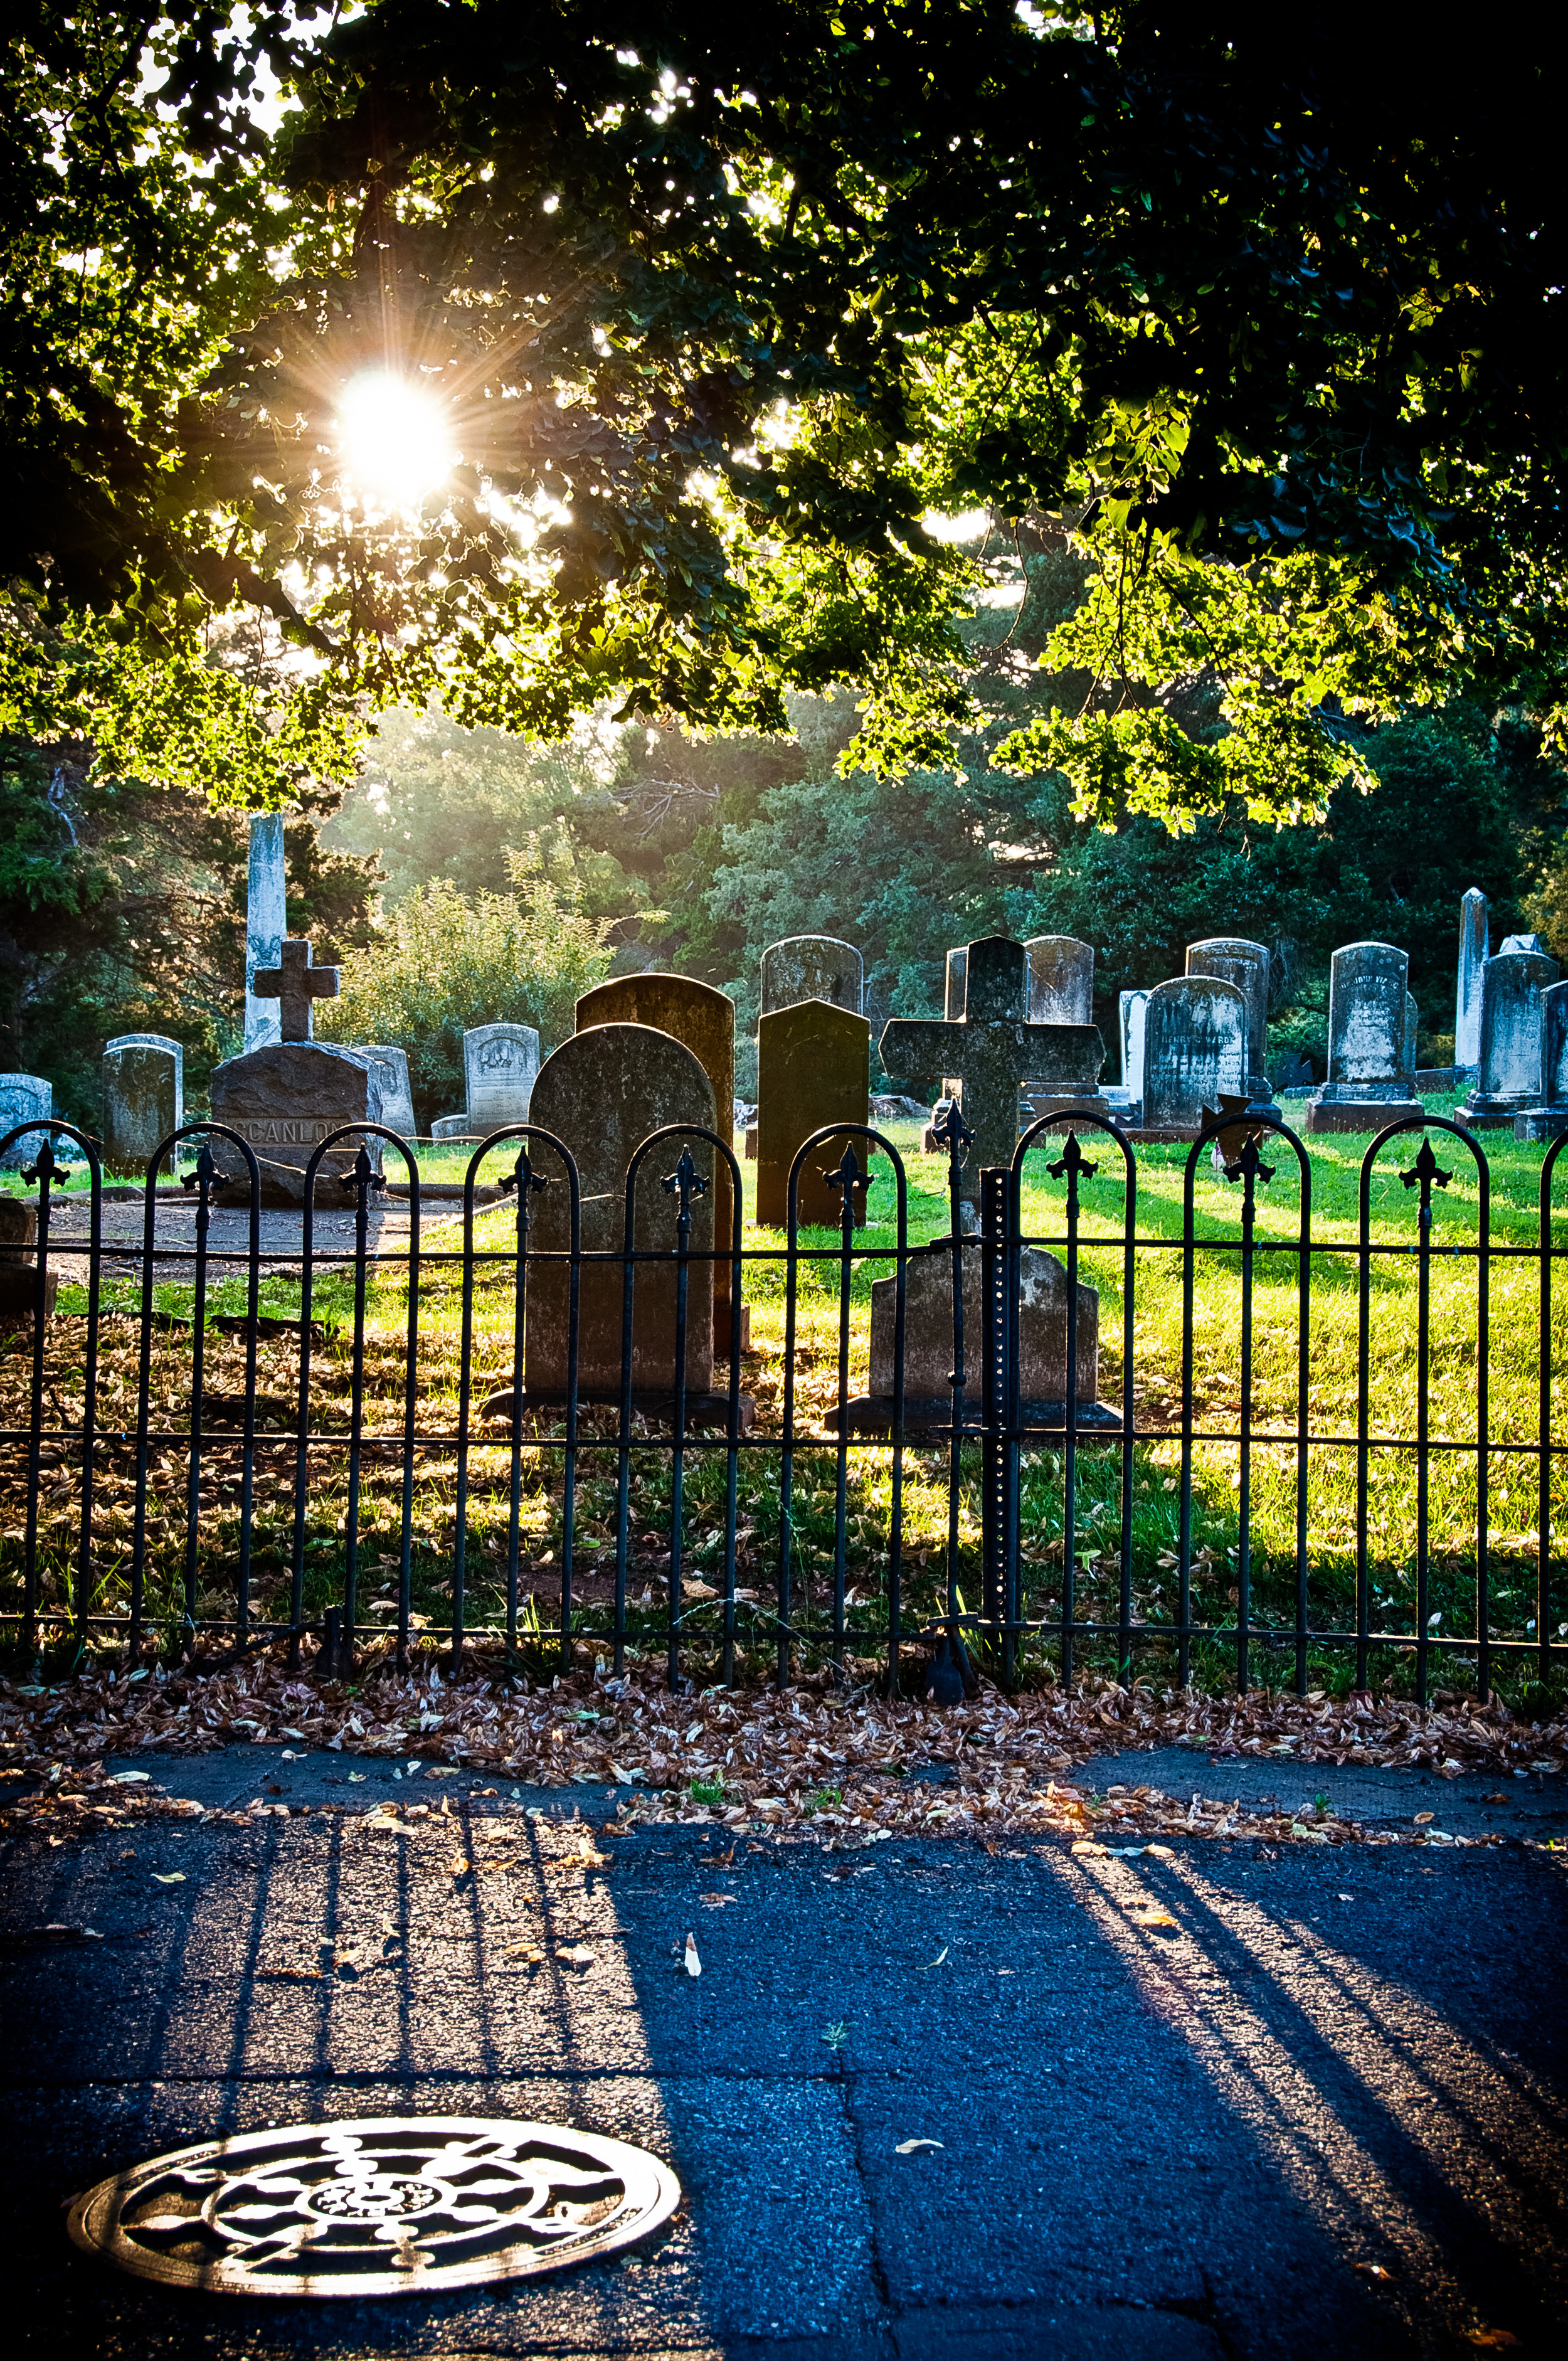 Cemetery at Sunset, the overall winning image of the photowalk - Nikon D90